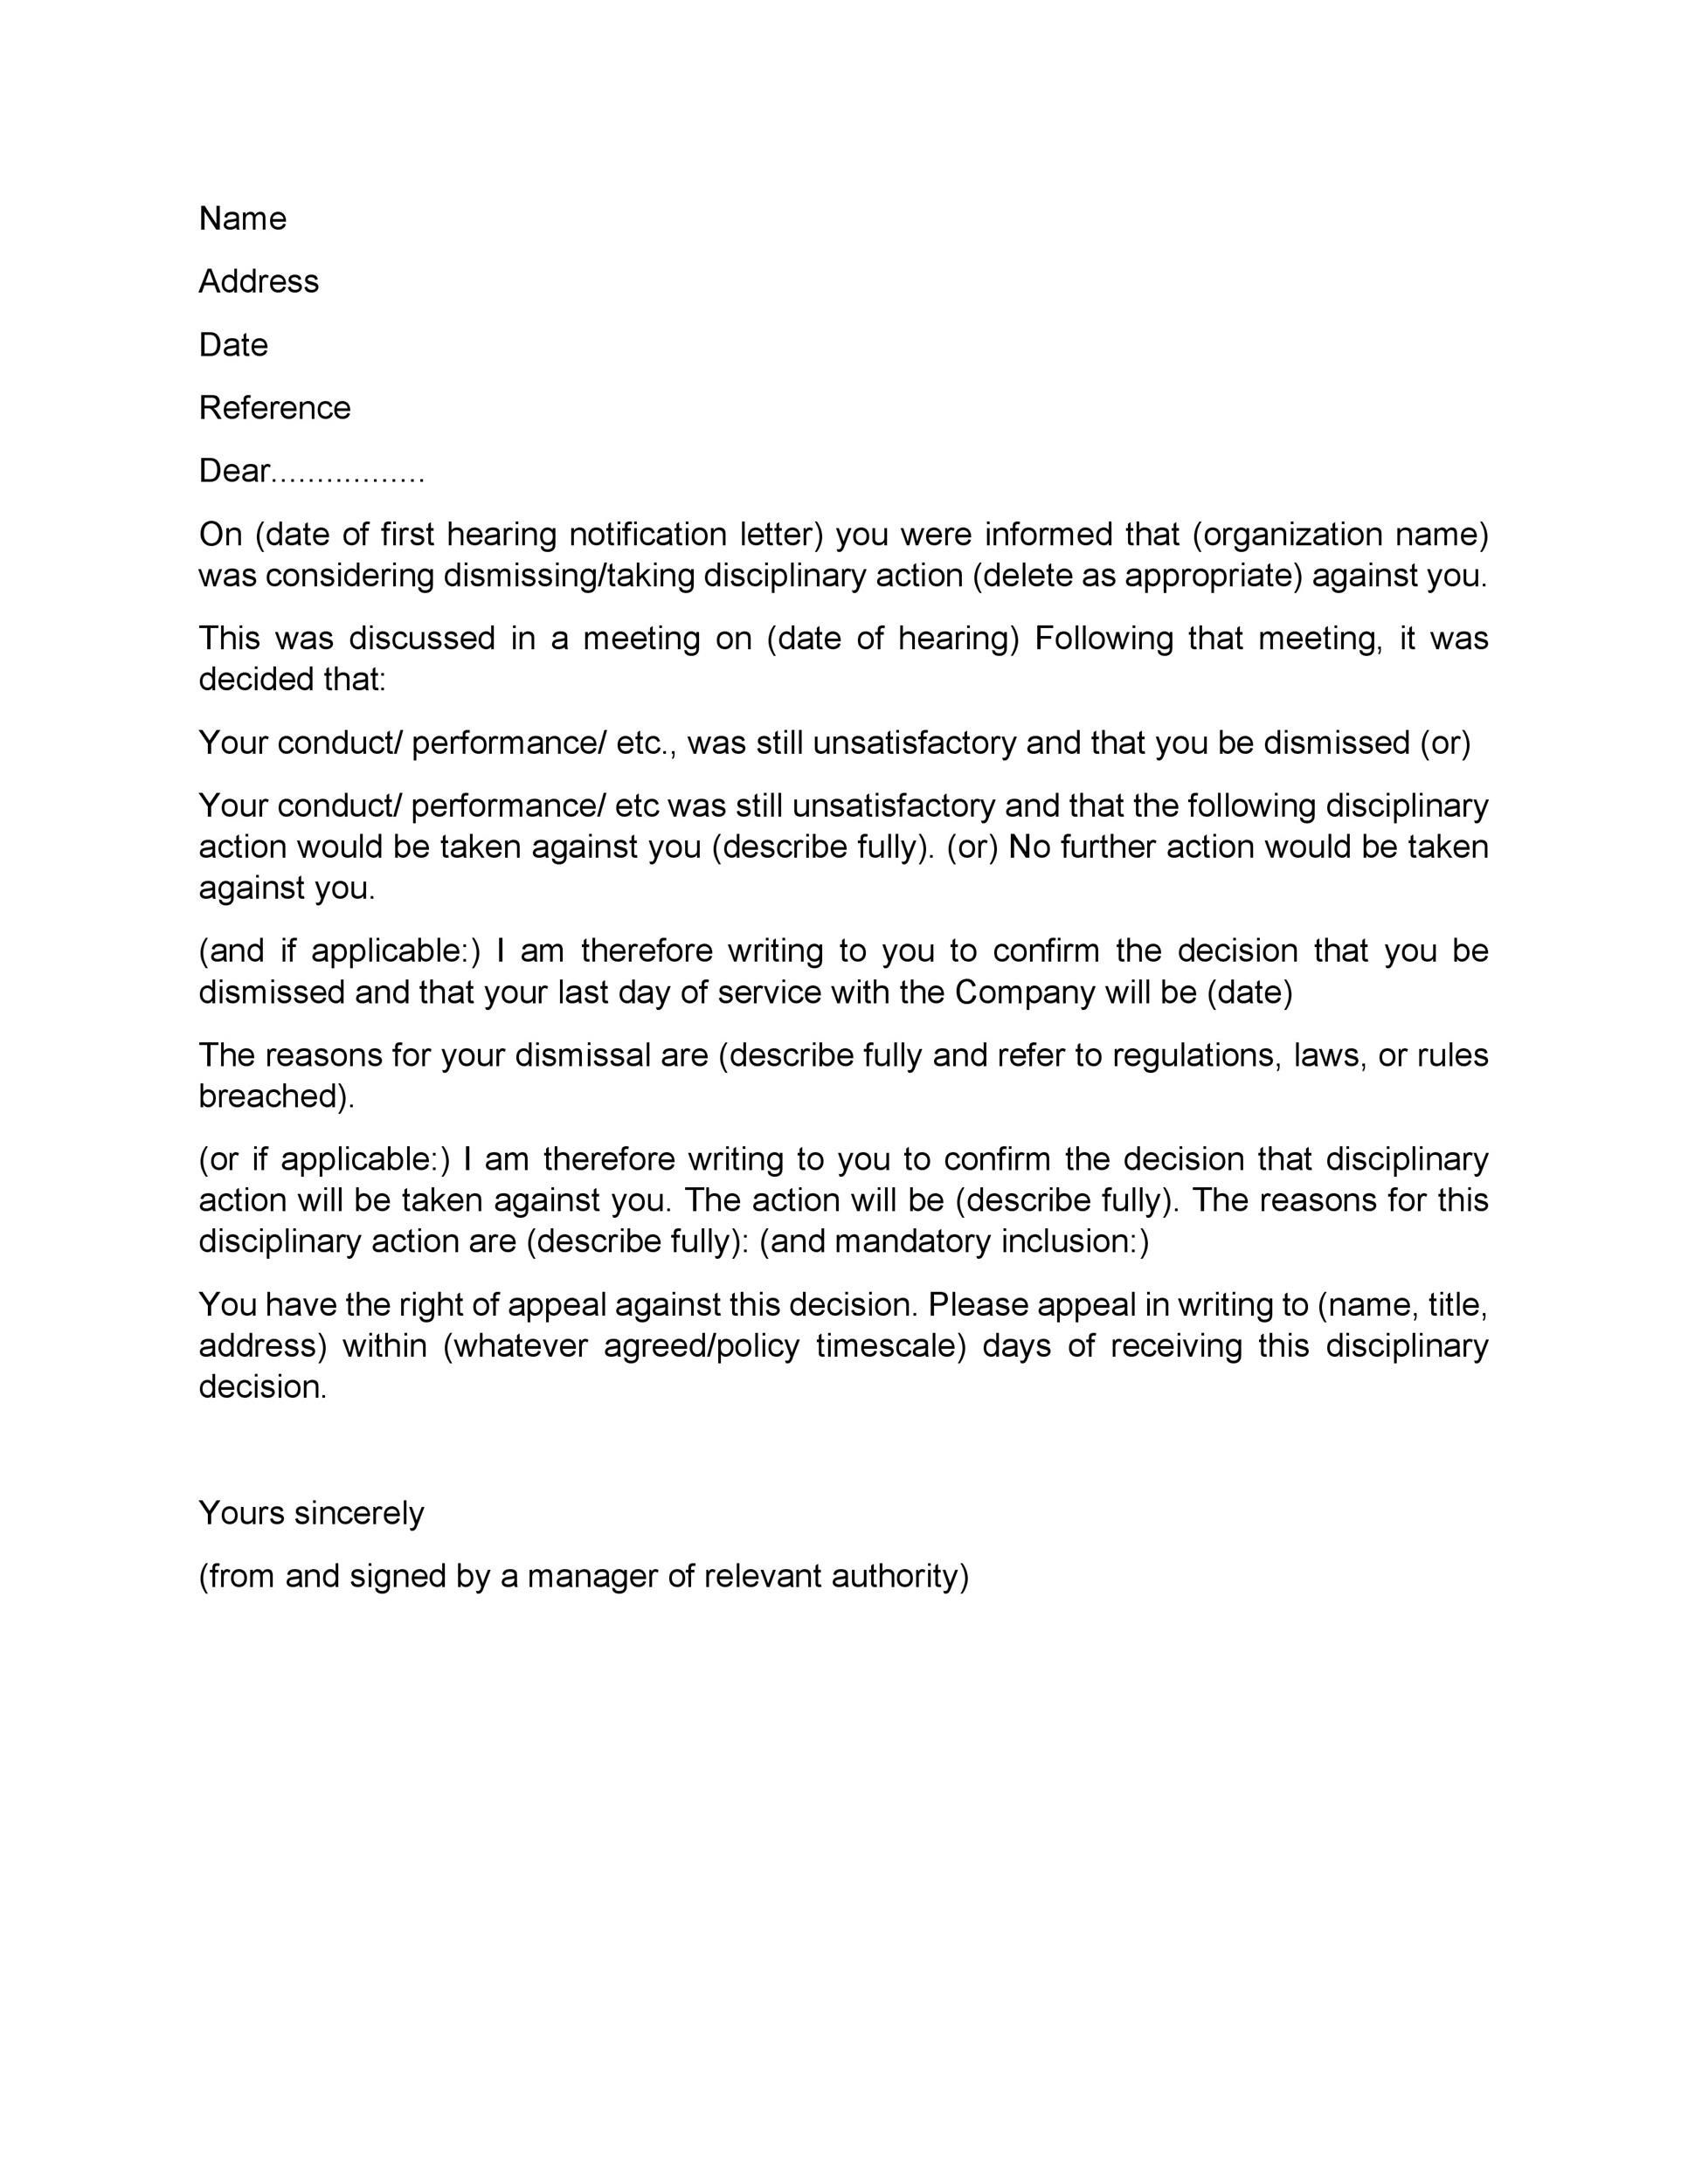 Letters Of Termination Of Employment Letter Template Professional Reference Letter Lettering Termination of employment letter template